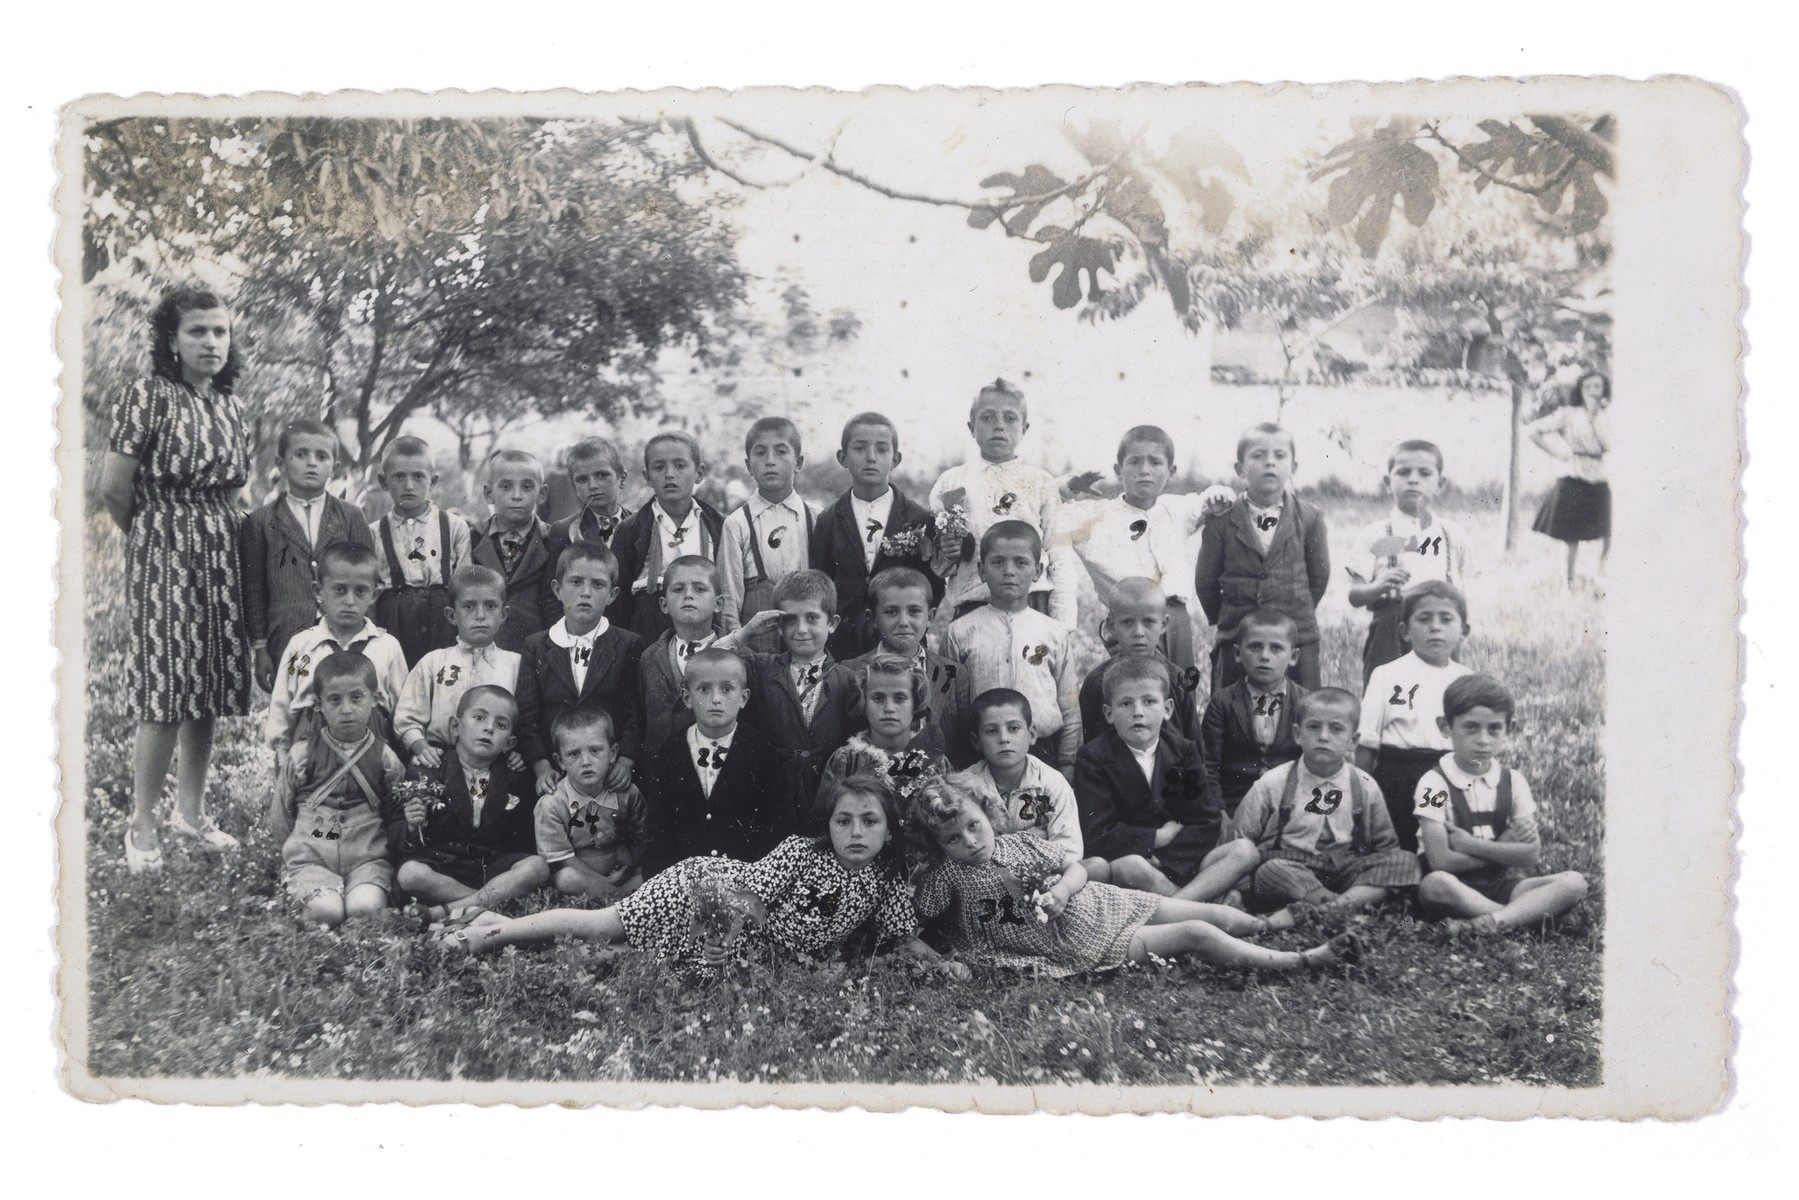 """Group portrait of Gavra Mandil's class at the Albanian school he attended in Kavaja.  Gavra is marked with a number 30 (first row, at the far right).    This picture was taken shortly after the Mandils arrived in Kavaja.  Gavra, who had attended first grade in a different location posing as a Christian, was hiding as a Moslem in Kavaja.  When called by his new teacher in Kavaja to go to a religion class, six-year-old Gavra became confused and did not know whether to attend the Christian or Islamic class.  It was only after the teacher scolded him, saying """"Ismail, what is the matter with you?"""" that Gavra remembered his new religious identity."""